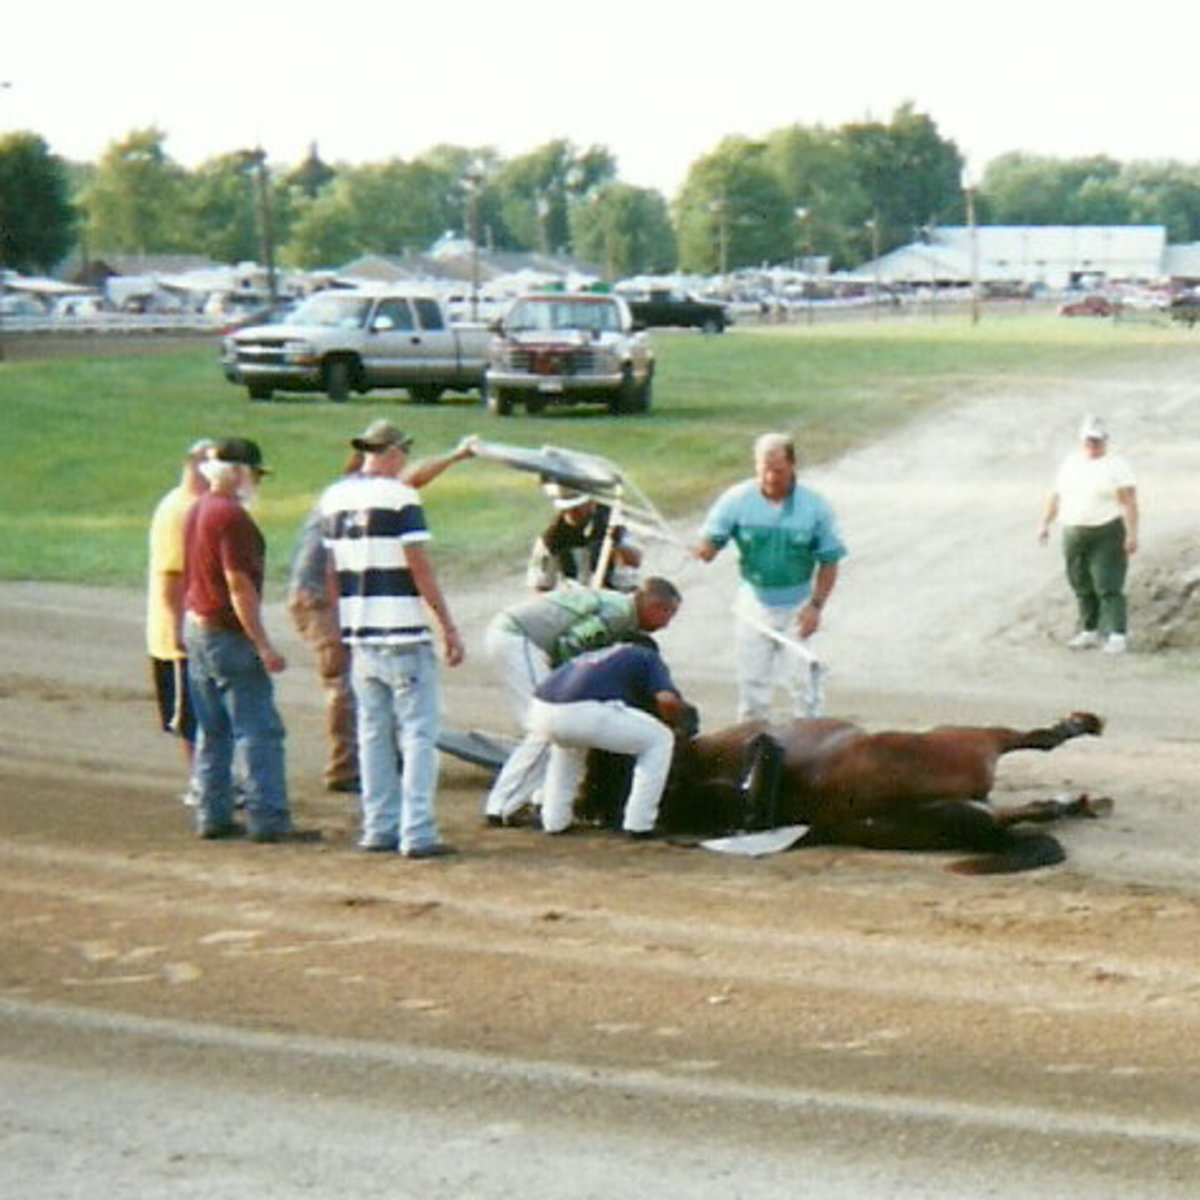 Fill-in Driver Randy Bates was able to jump ship from the sulky as Wonder Buns reared in the harness and flipped backwards to the ground.